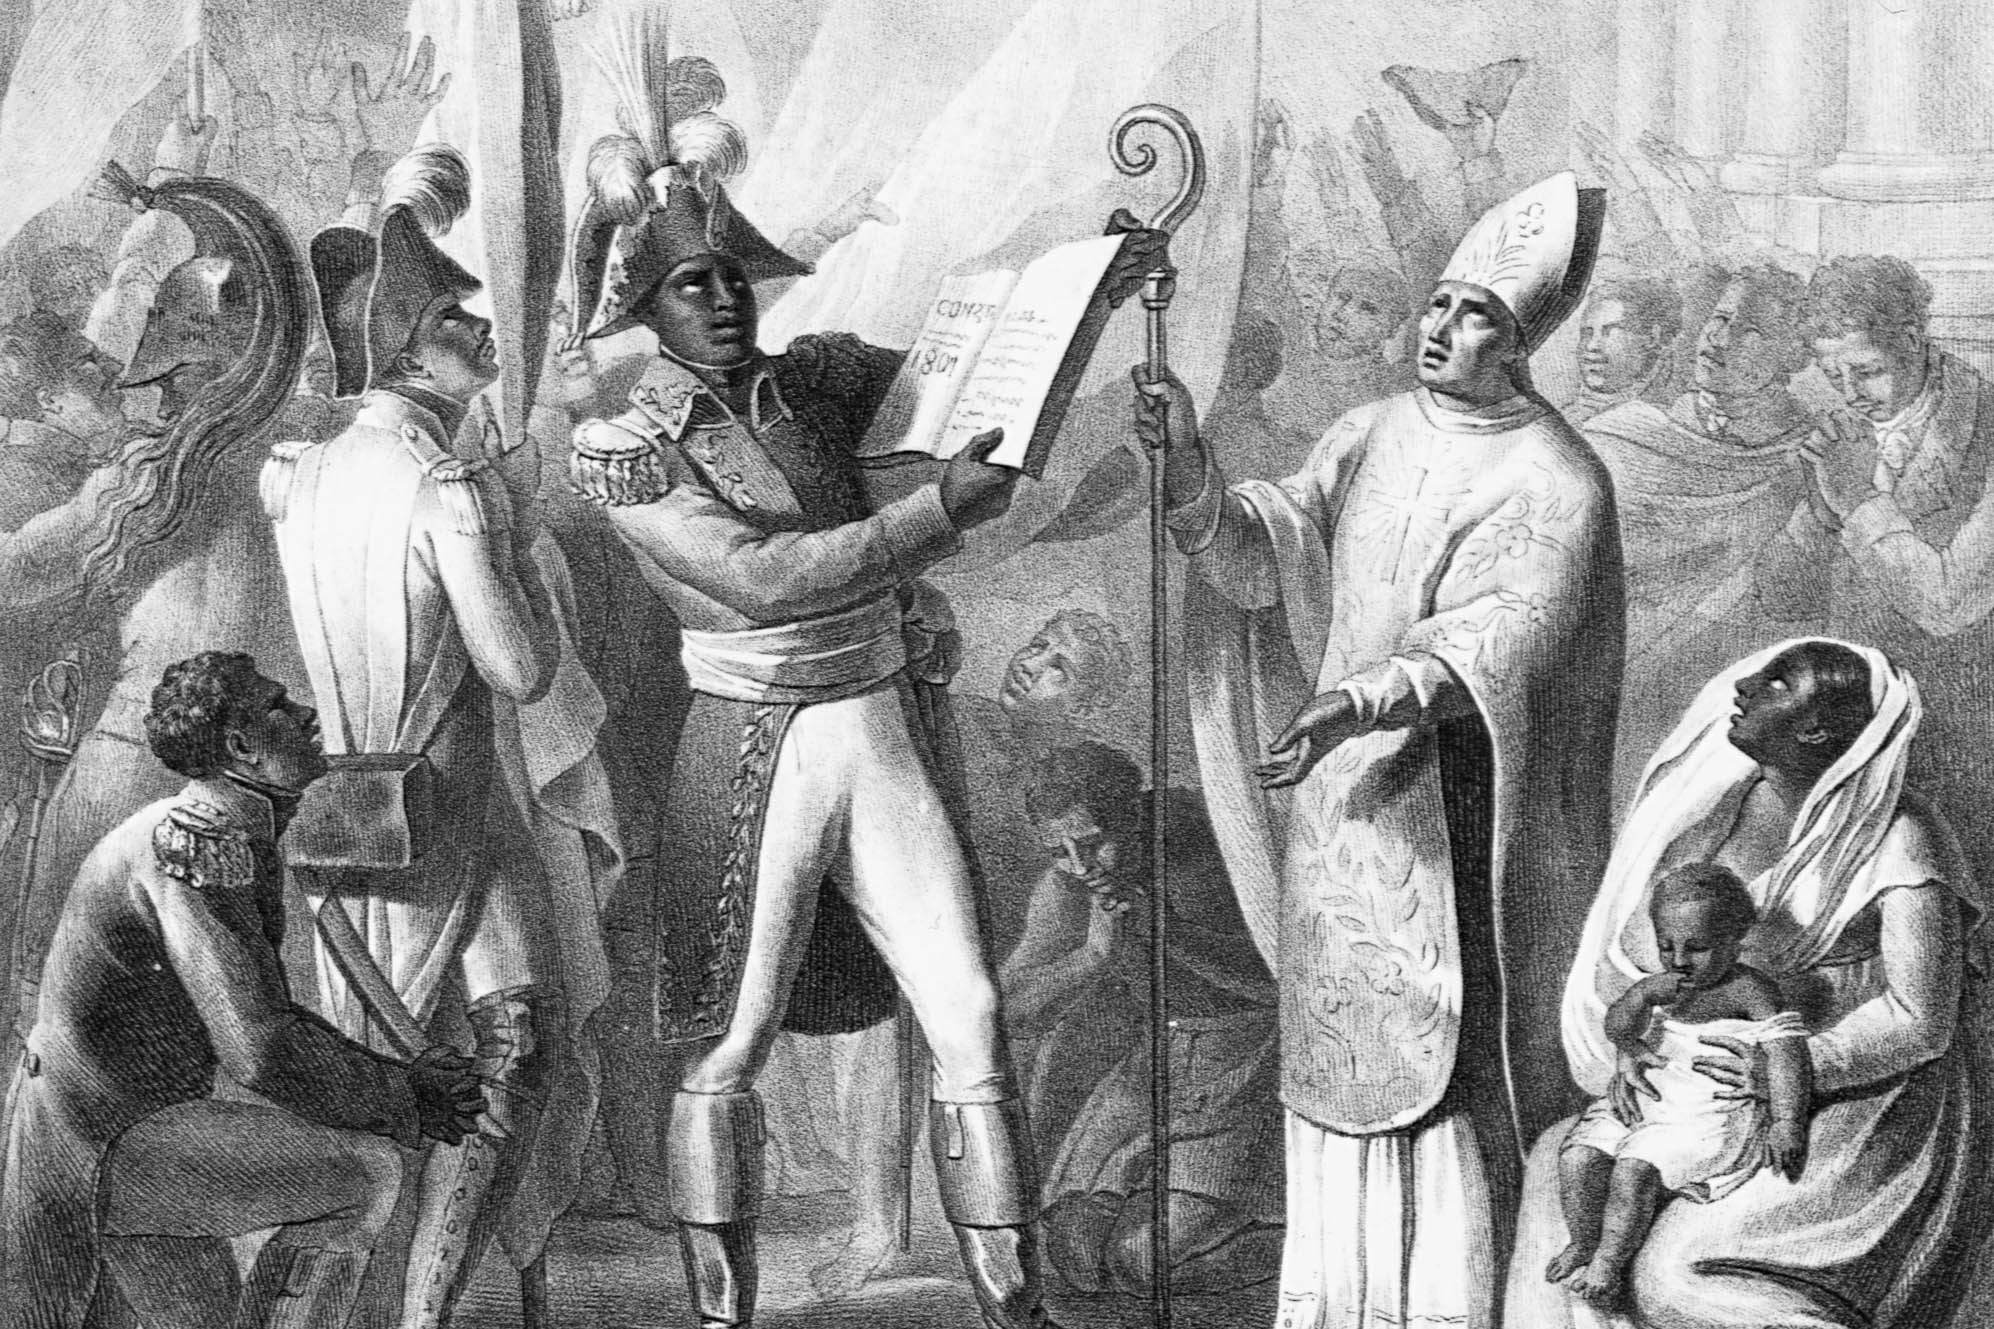 In this engraving Haitian revolutionary leader Toussaint L'Ouverture (1743-1803) holds up a proclamation in front of a bishop. (Photo by © CORBIS/Corbis via Getty Images)